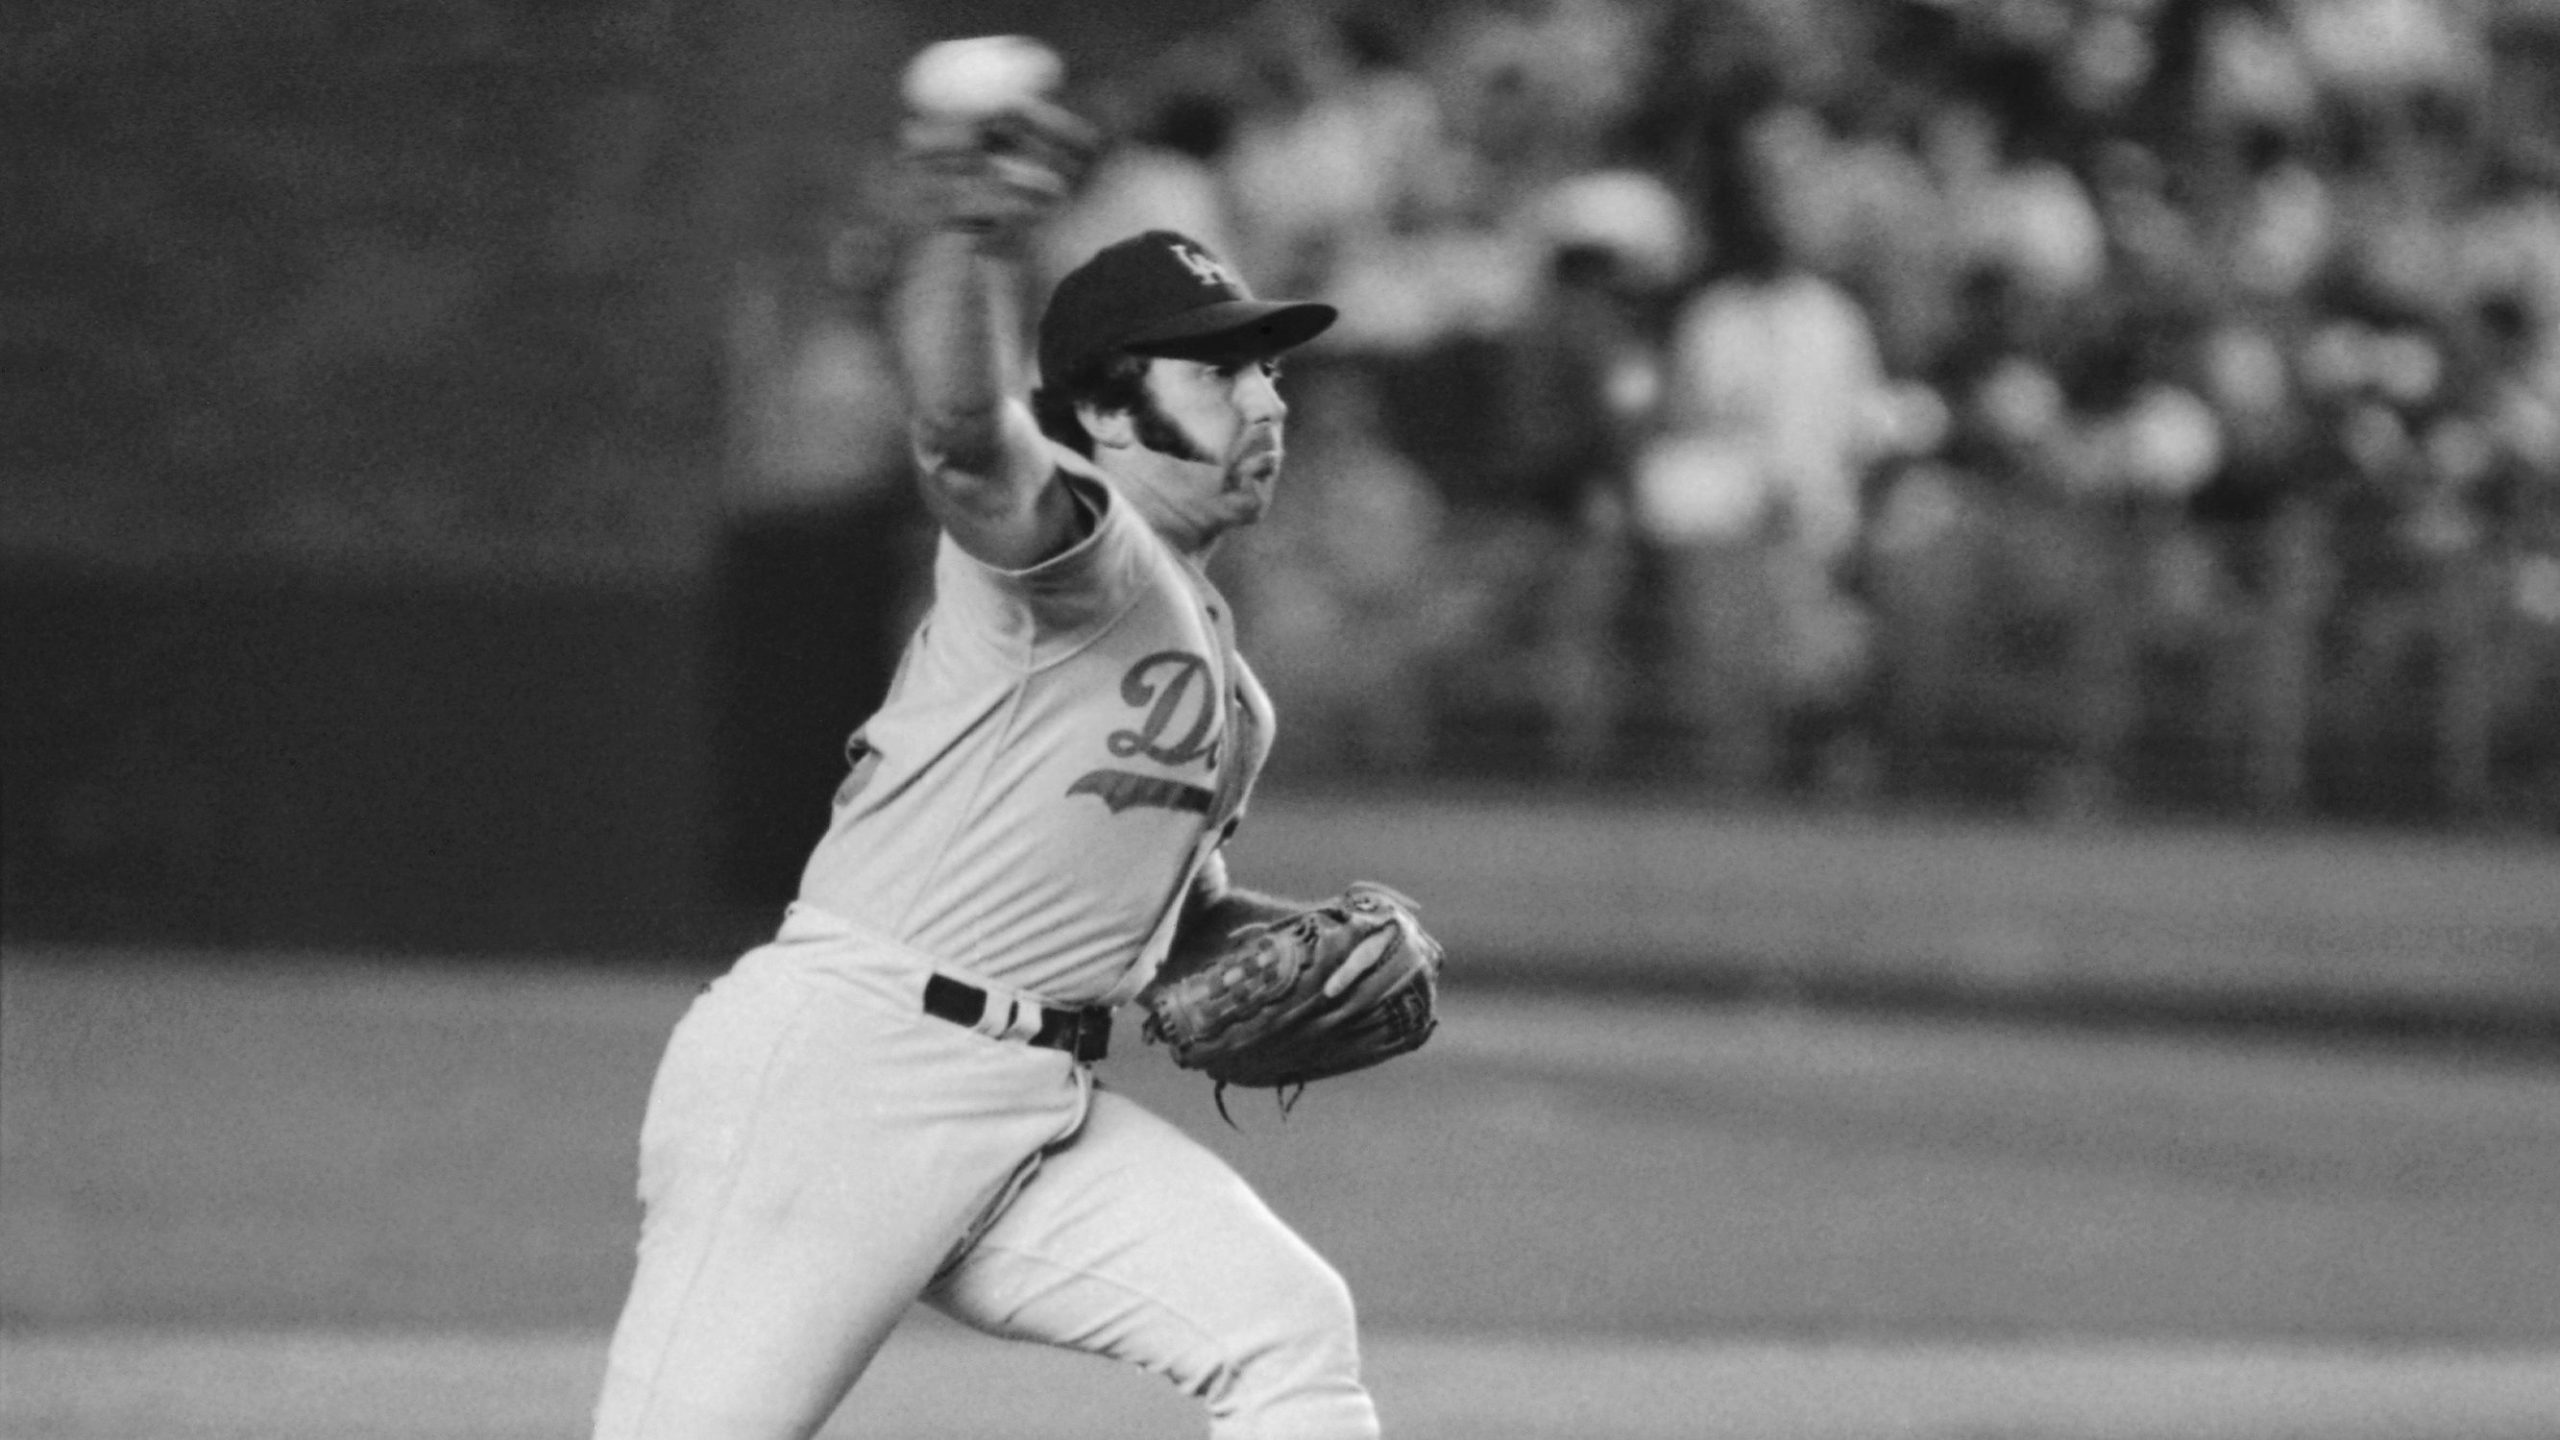 Los Angeles Dodgers pitcher Mike Marshall throws to a New York Mets batter during a baseball game in New York in August 1974. (Richard Drew / Associated Press)